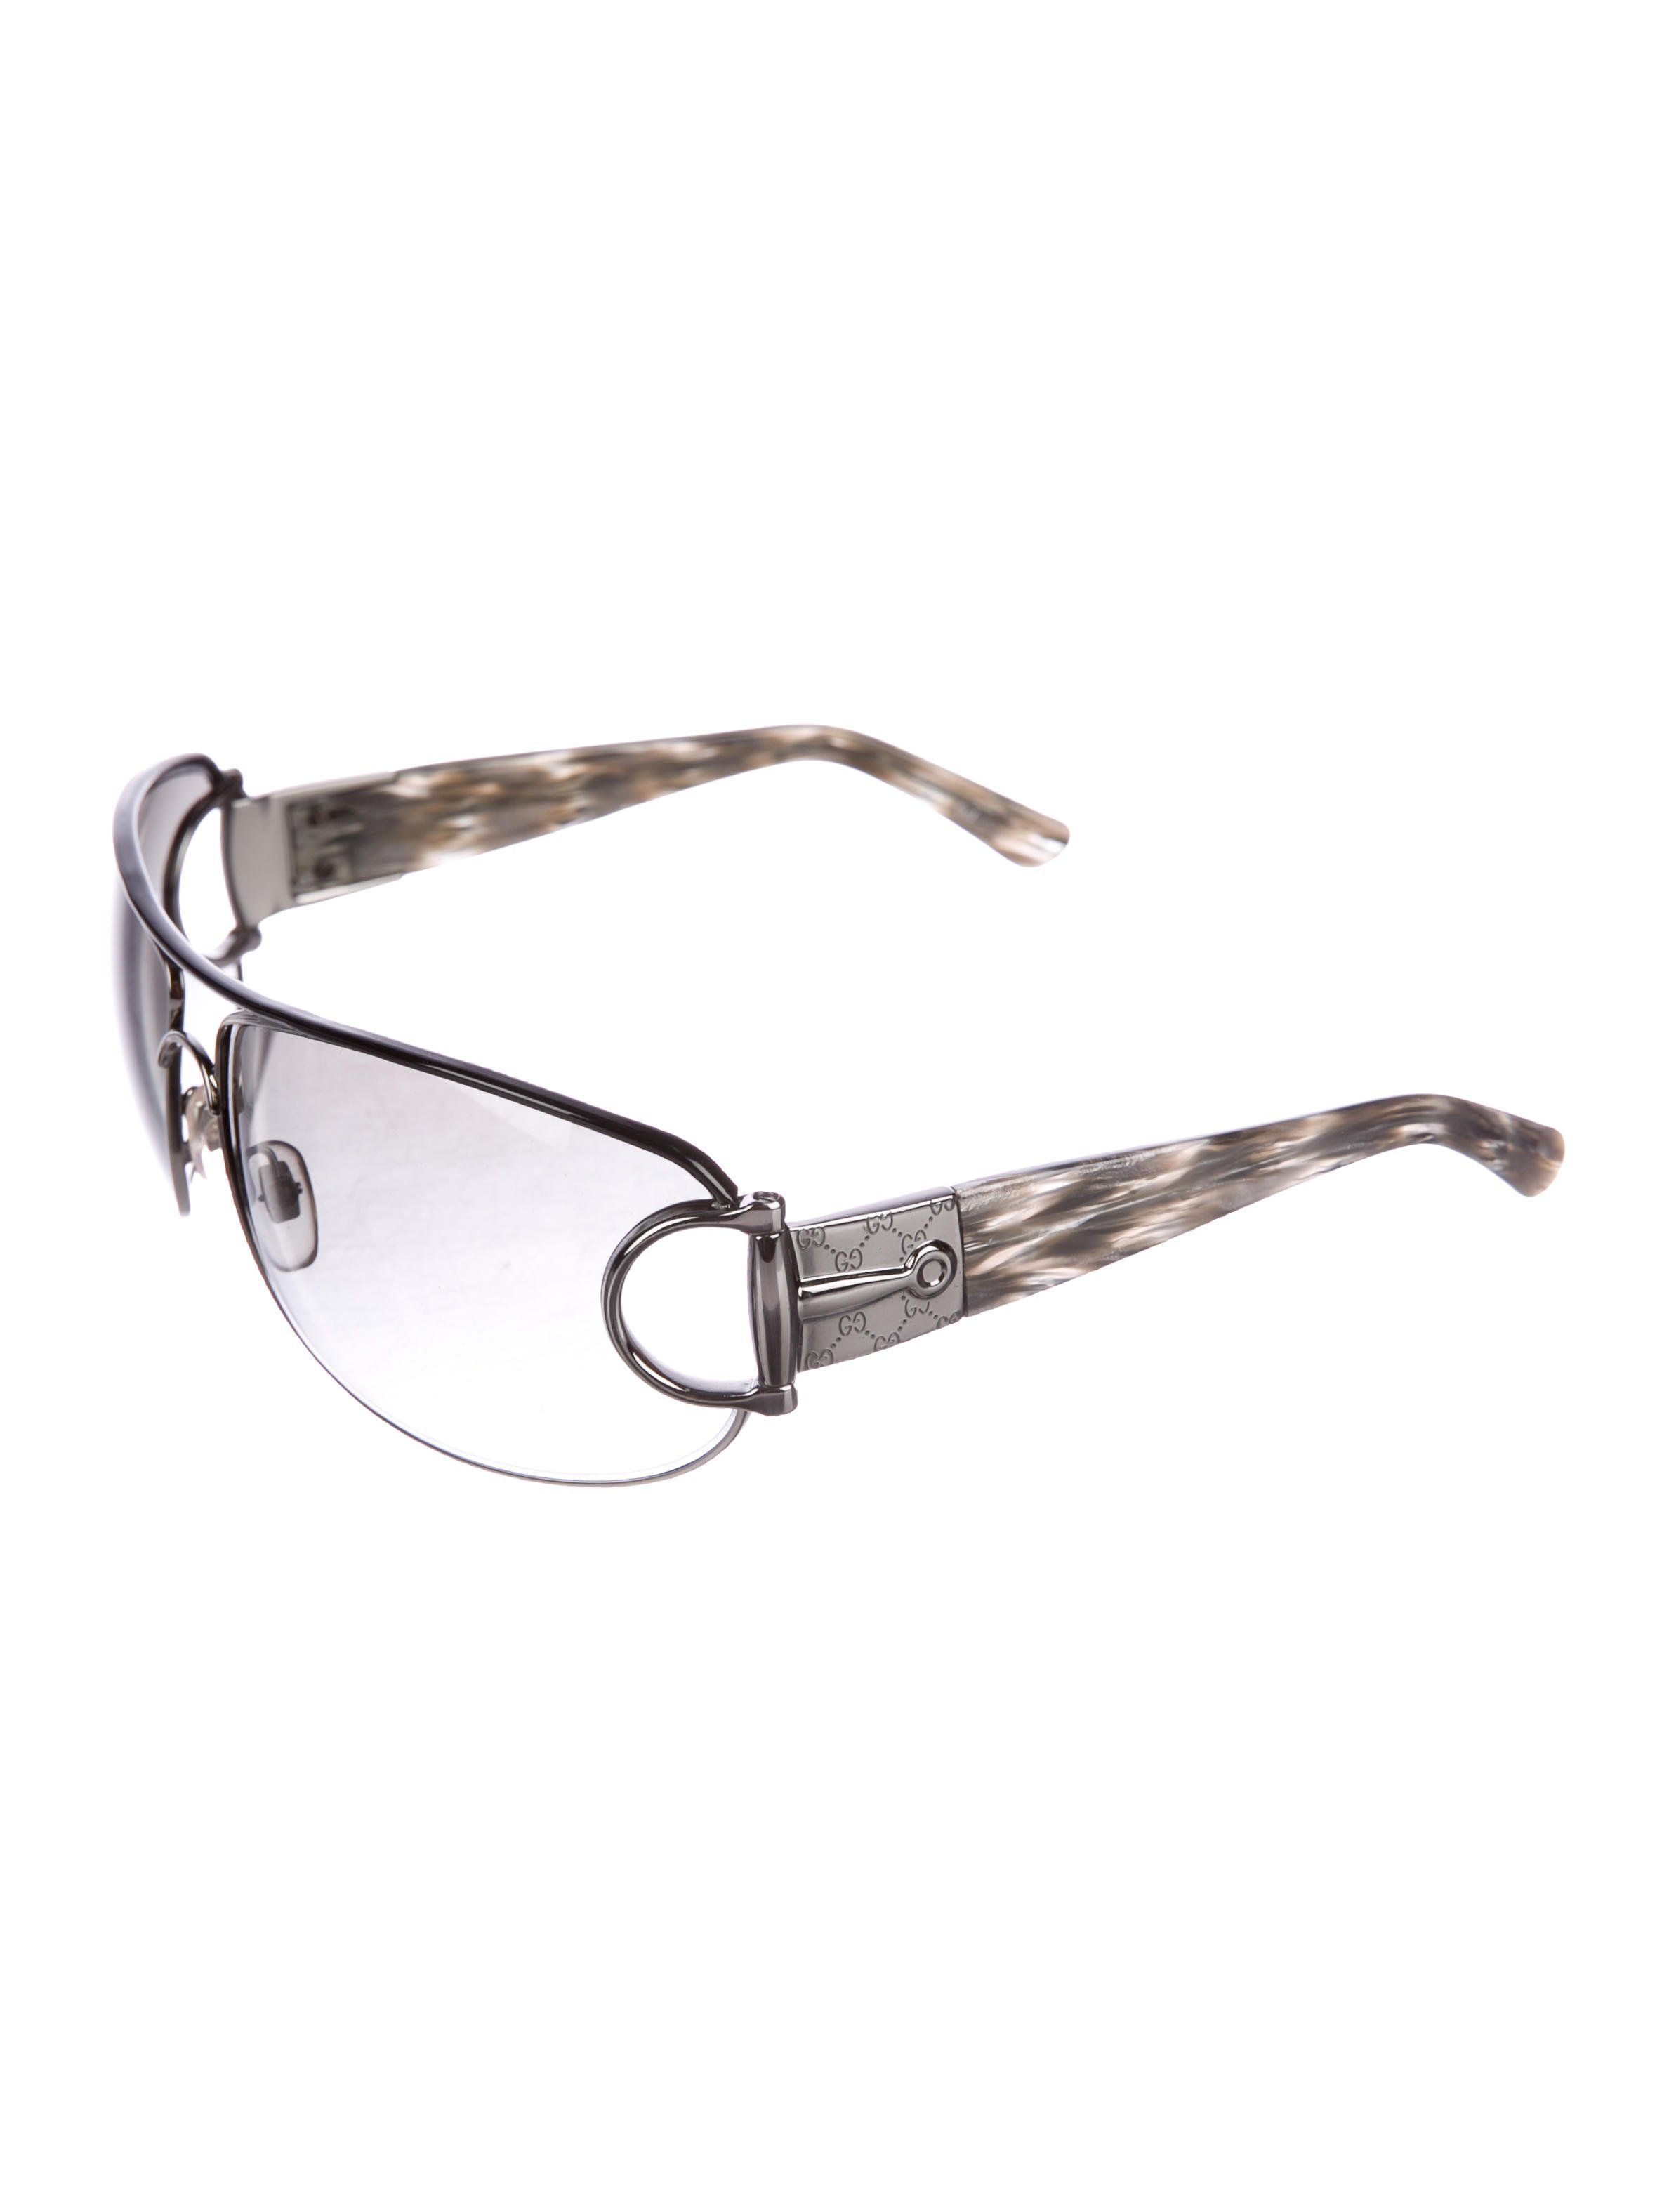 dd31e35ae7 Silver-tone metal Gucci sunglasses with charcoal gradient lenses at  oversize square frames and silver-tone GG-engraved embellishments at hinges  and temples.